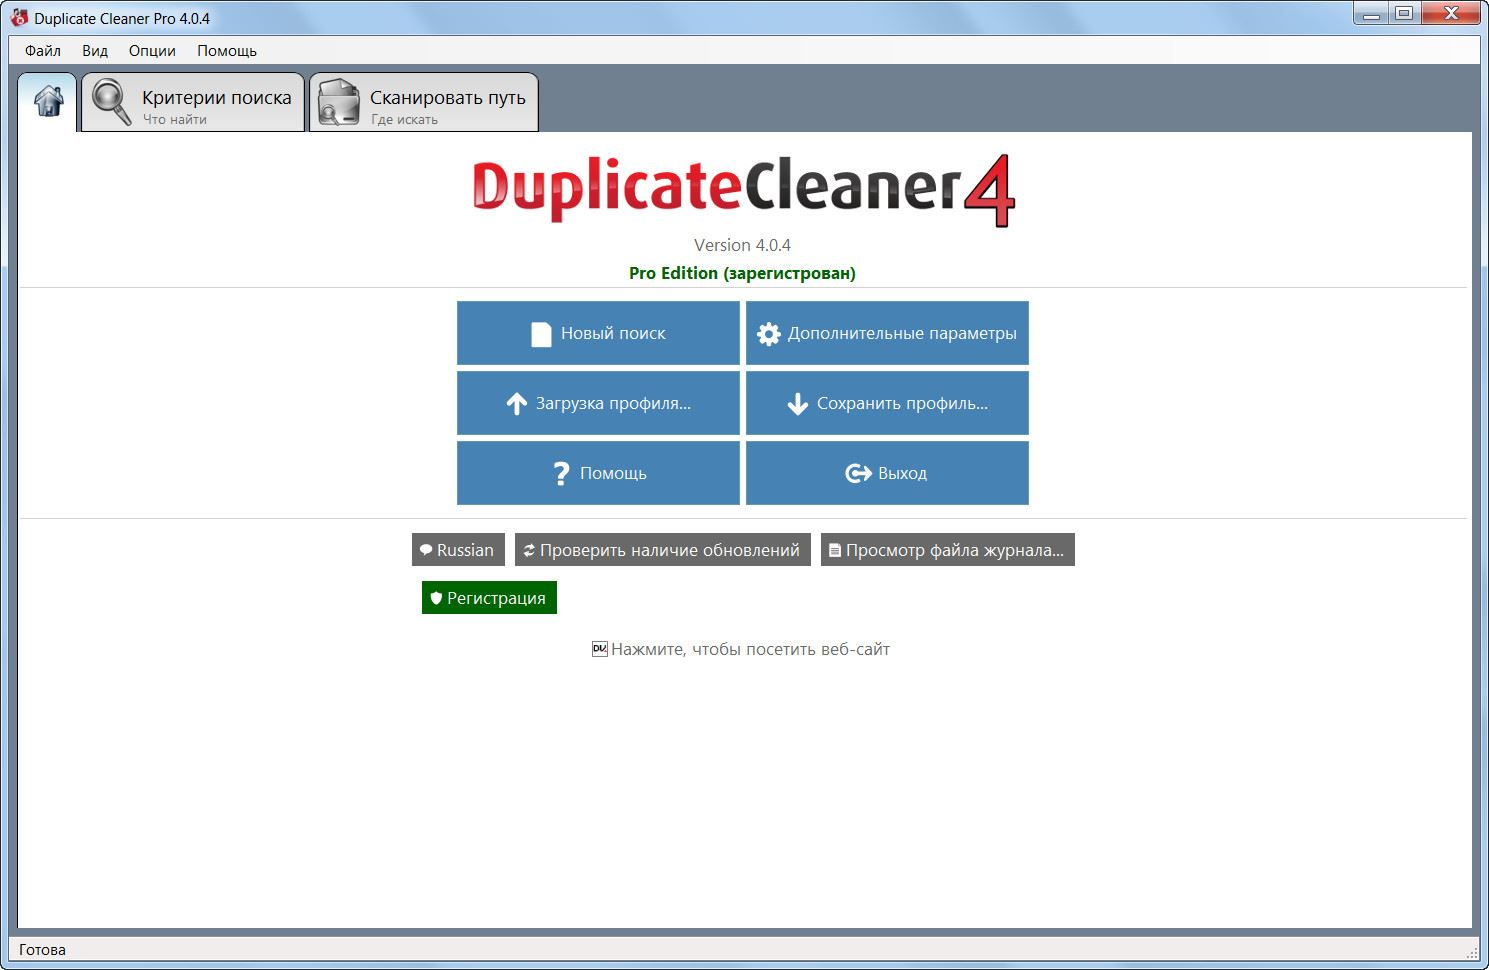 Duplicate Cleaner Pro 4.0.4 RePack by D!akov (2016) MULTi / Русский